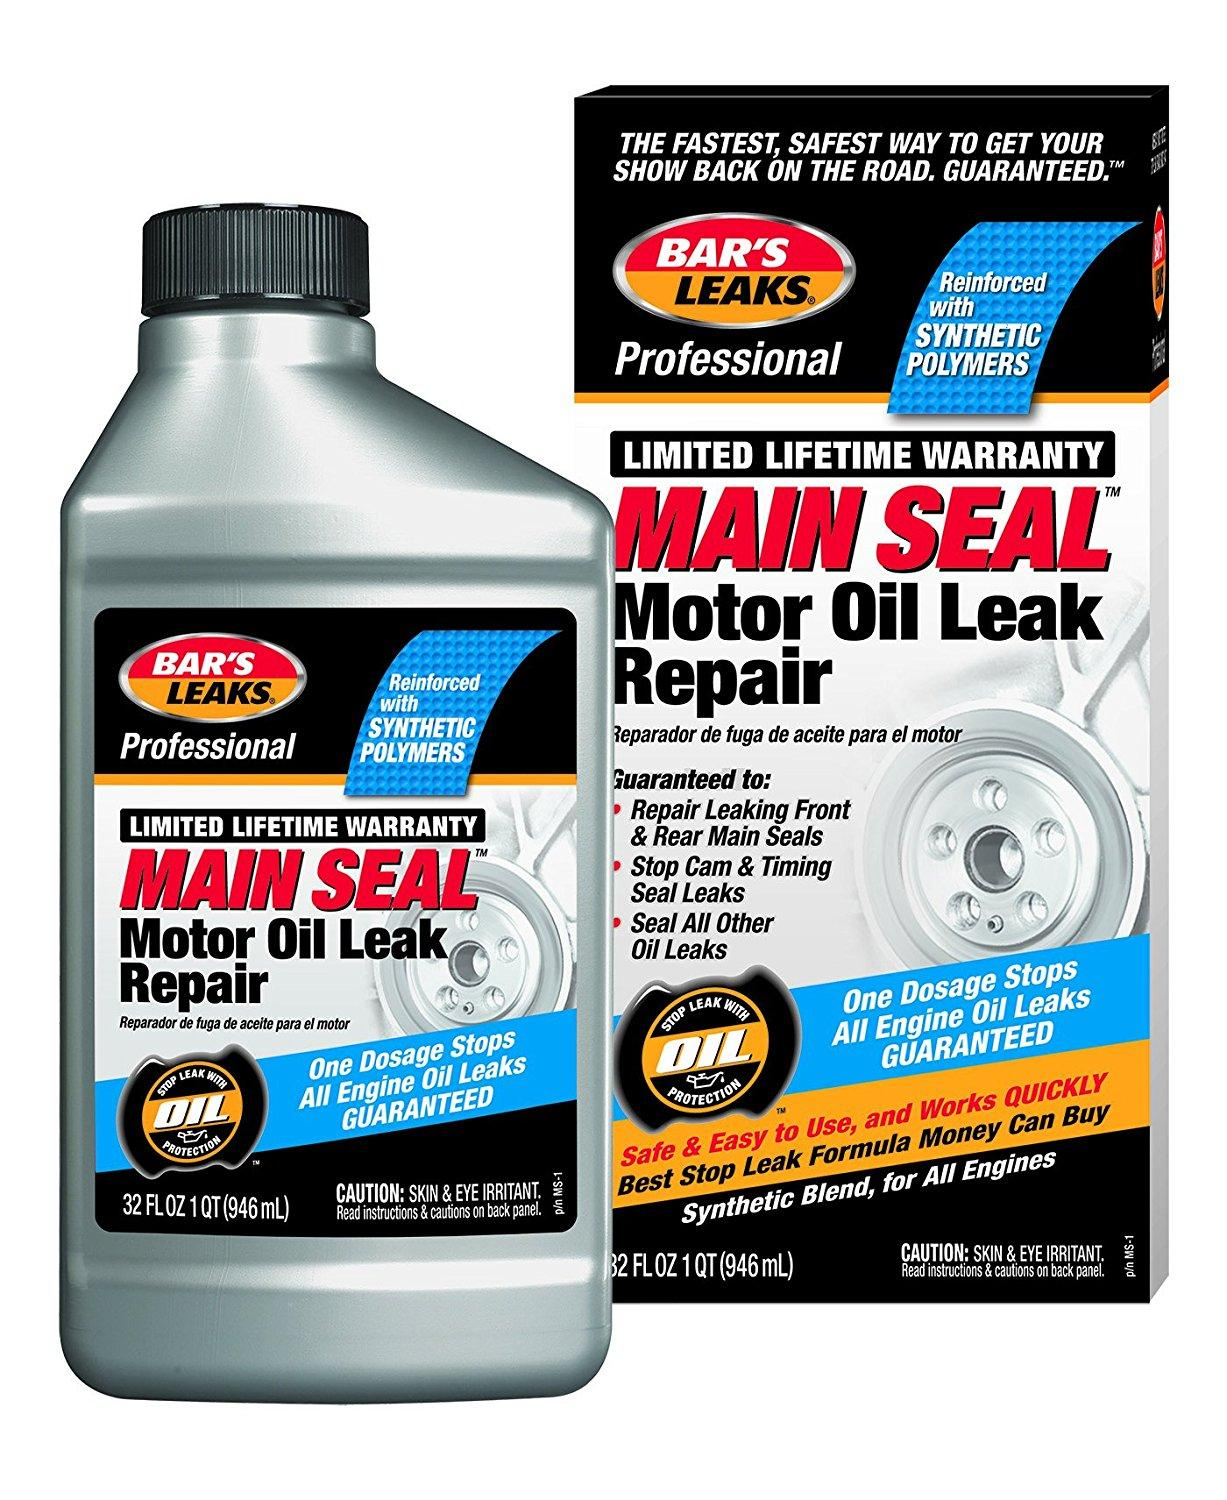 Bar's Leaks MS-1 Bar's Leaks Main Seal Motor Oil Leak